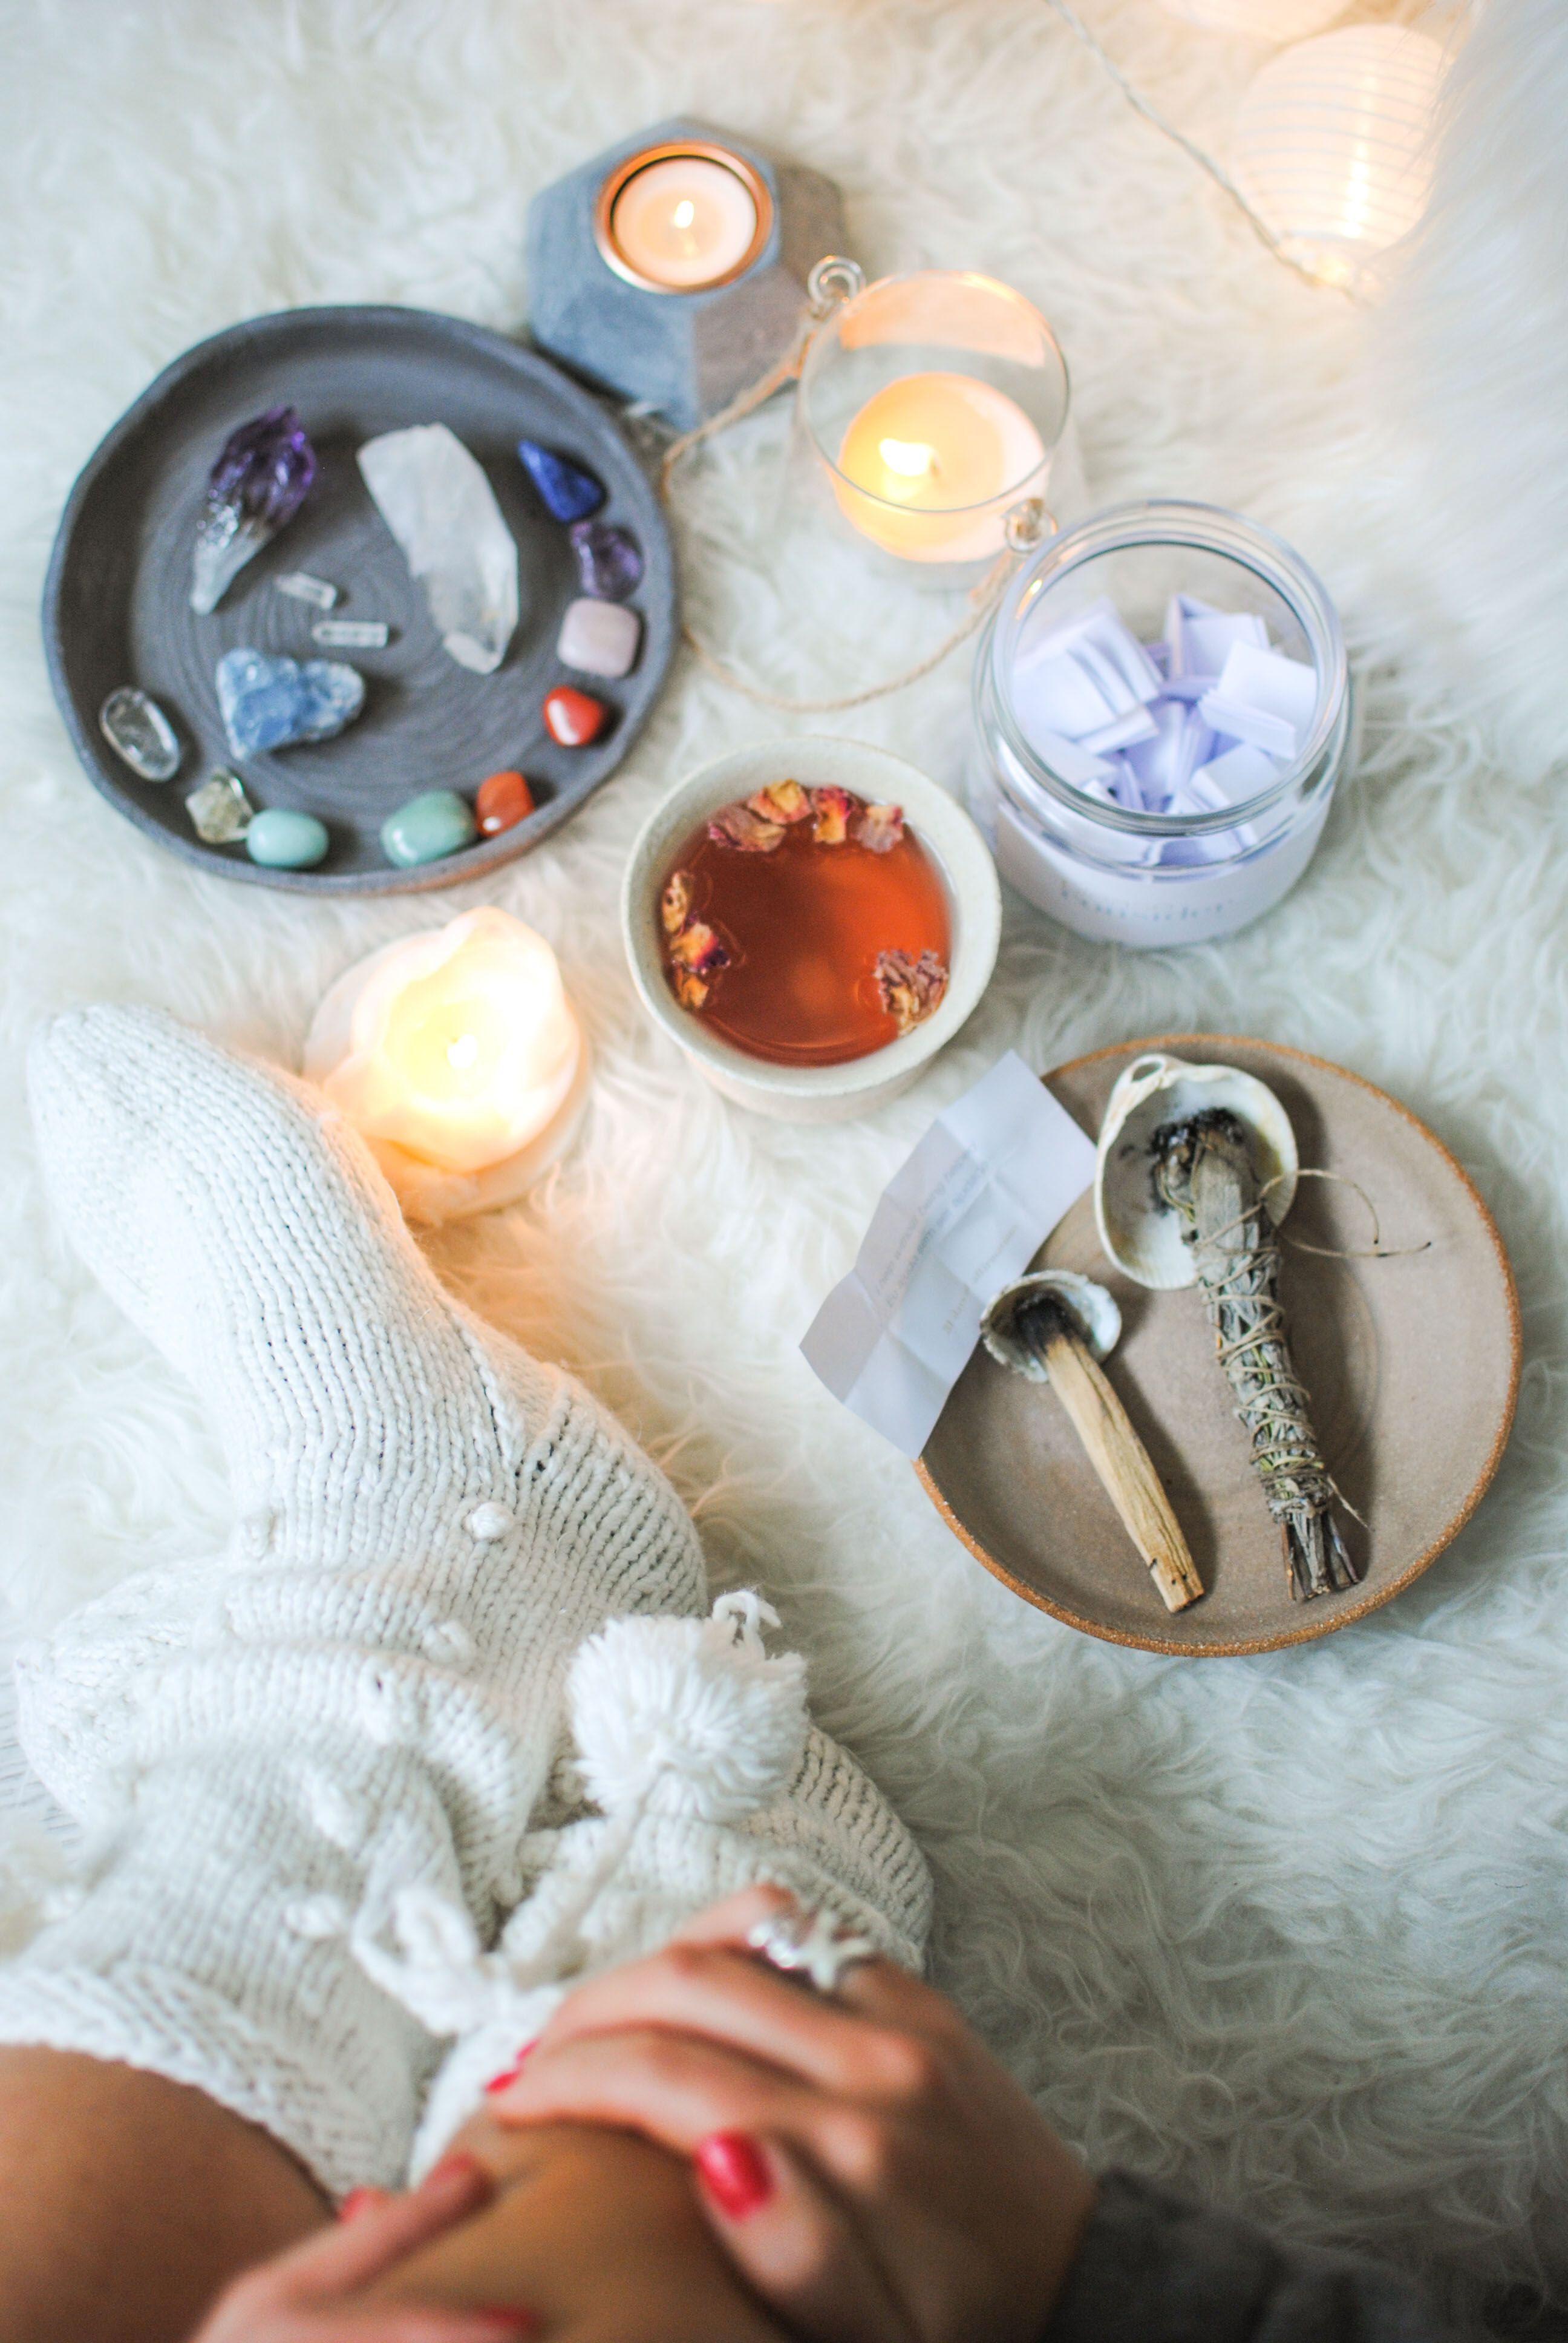 winter morning routine | please consider | joana limao